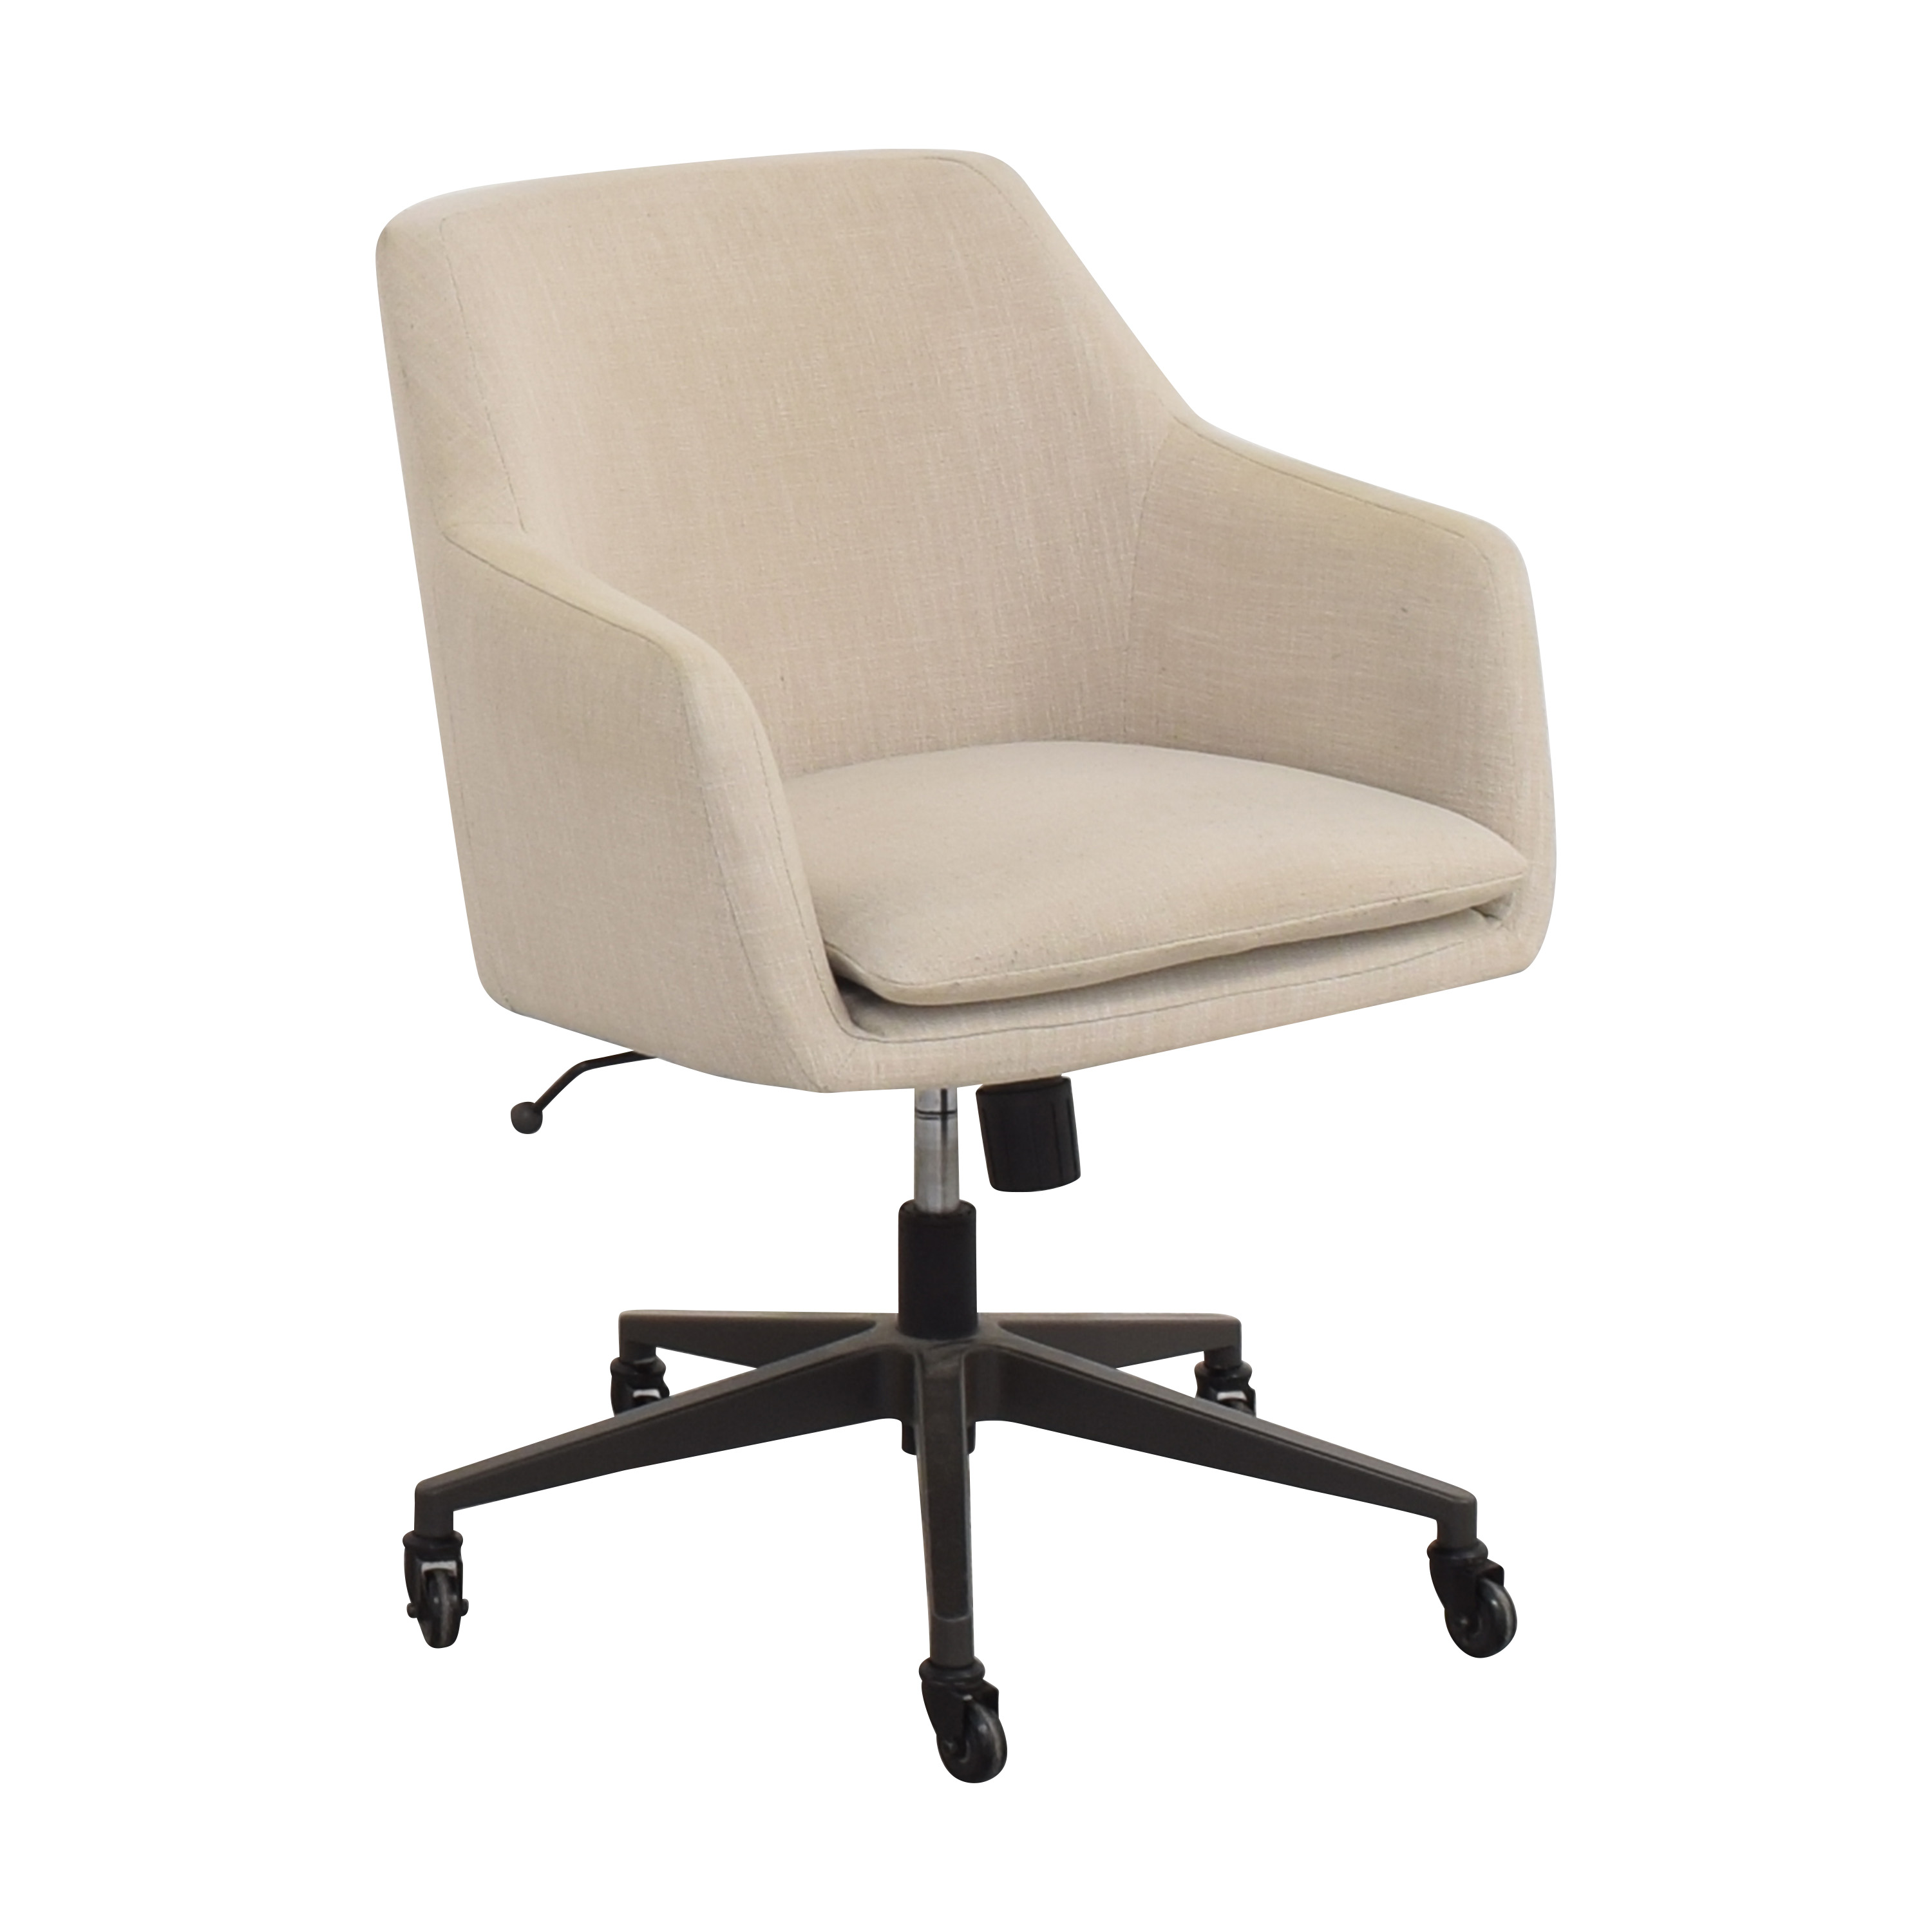 West Elm West Elm Helvetica Office Chair for sale